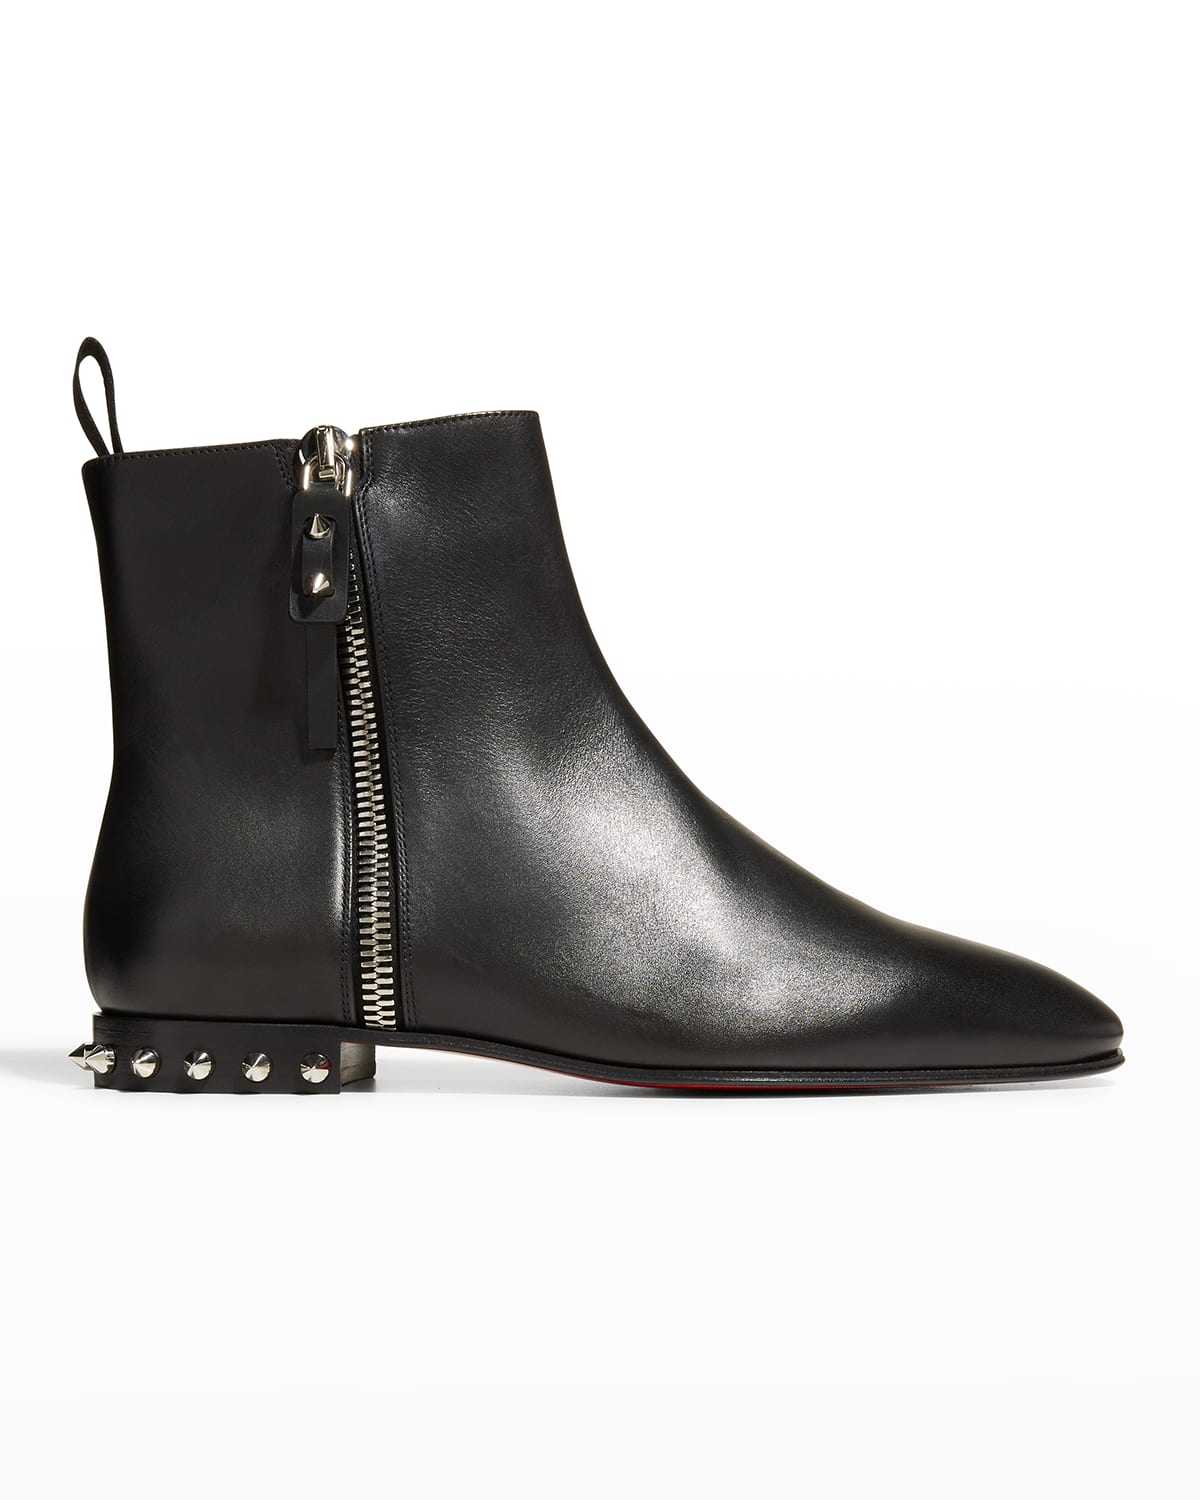 Roadirik Donna Spiked Leather Red Sole Booties